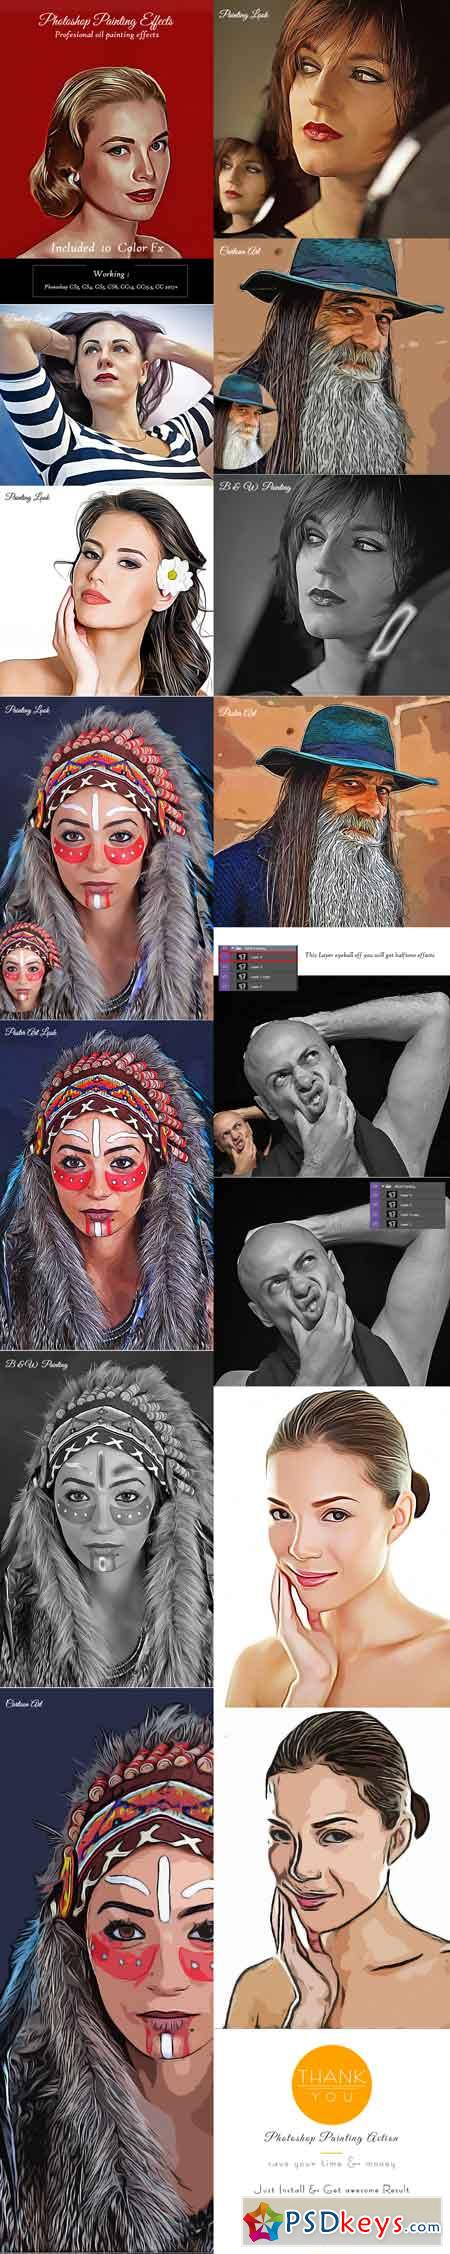 Photoshop Painting Effects 20659061